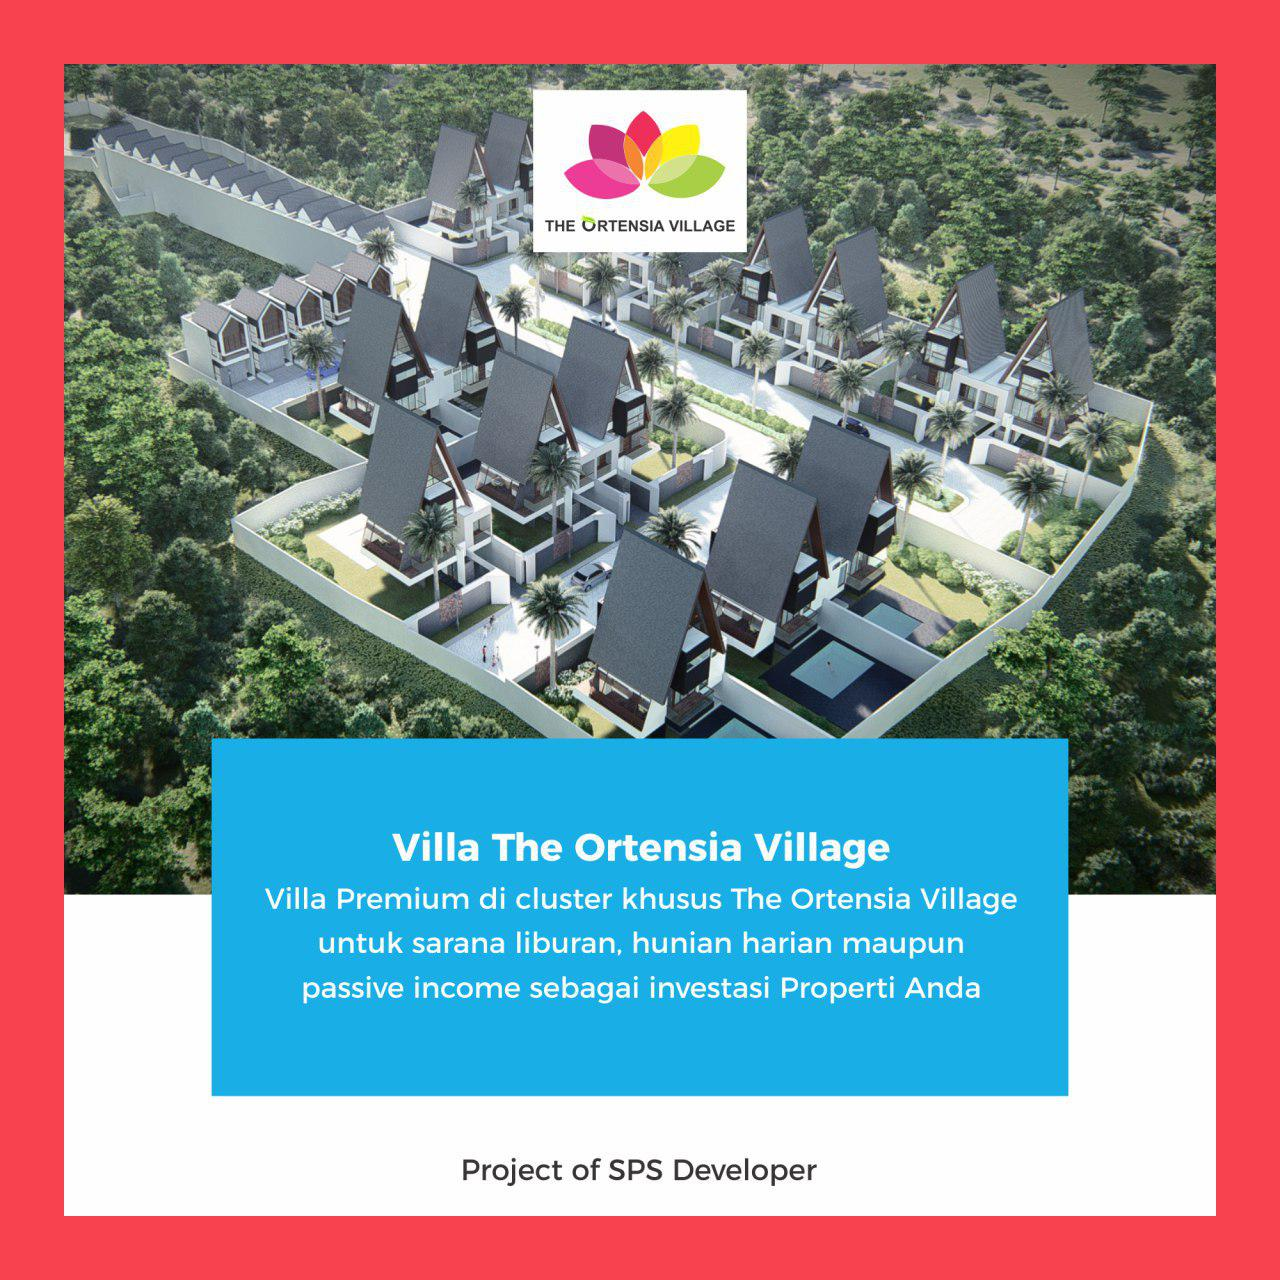 the ortensia village - villa